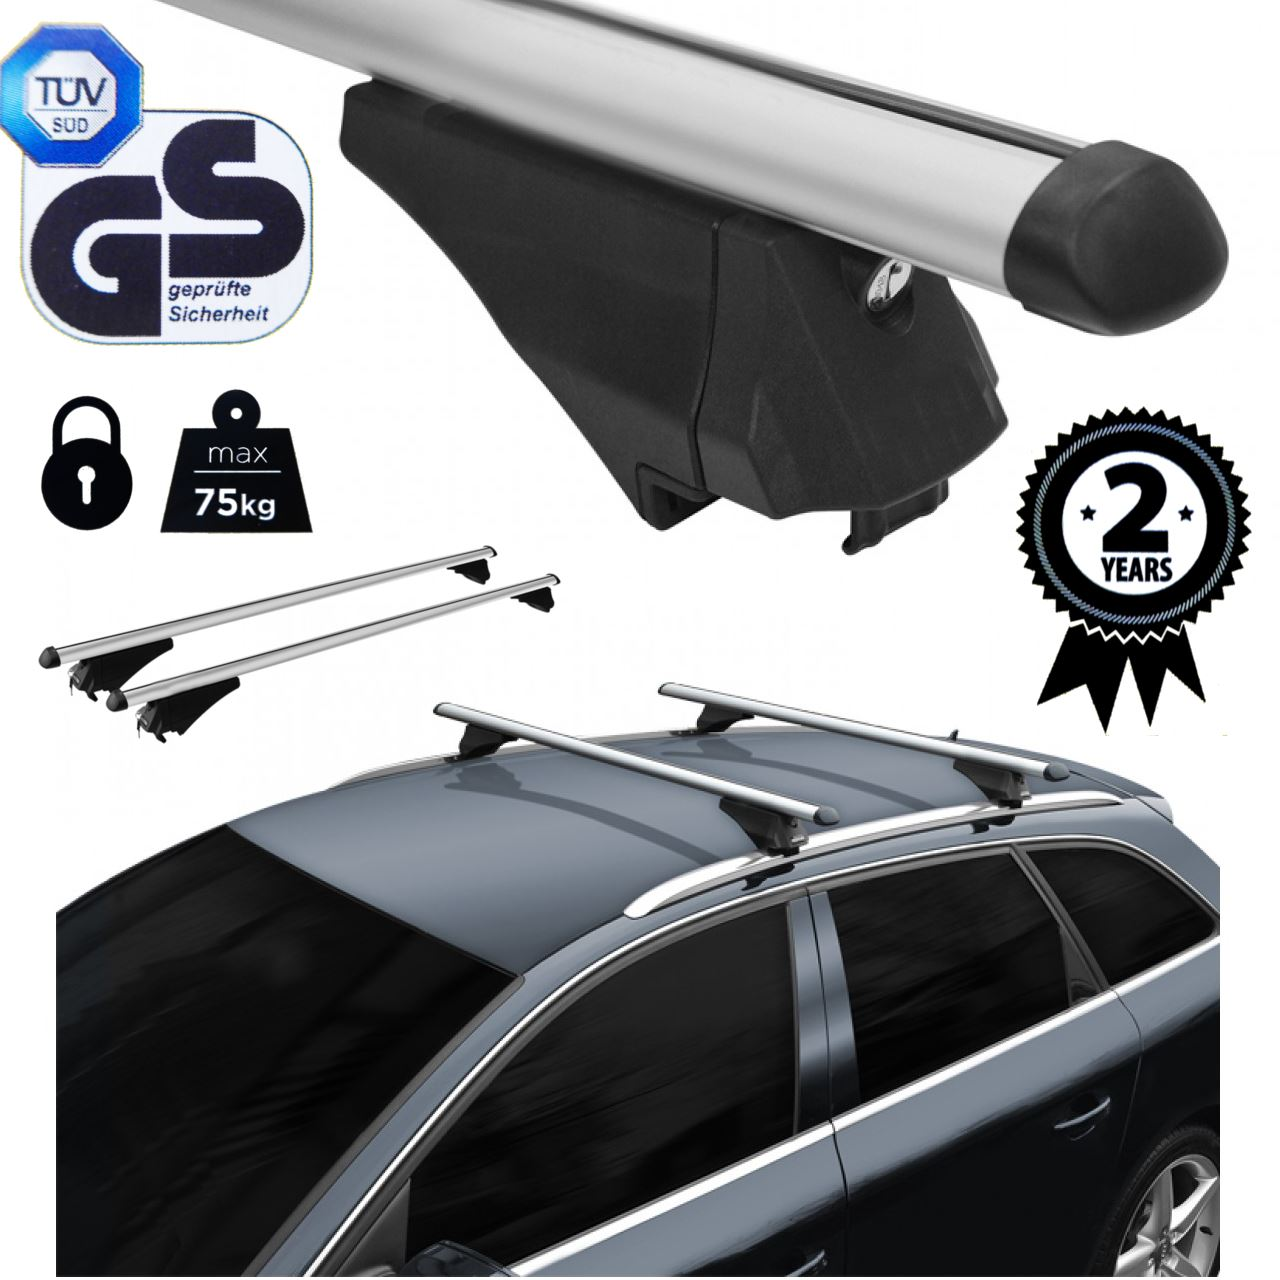 Roof Rack Cross Bars Aluminum Locking Fits Vw Tiguan Suv